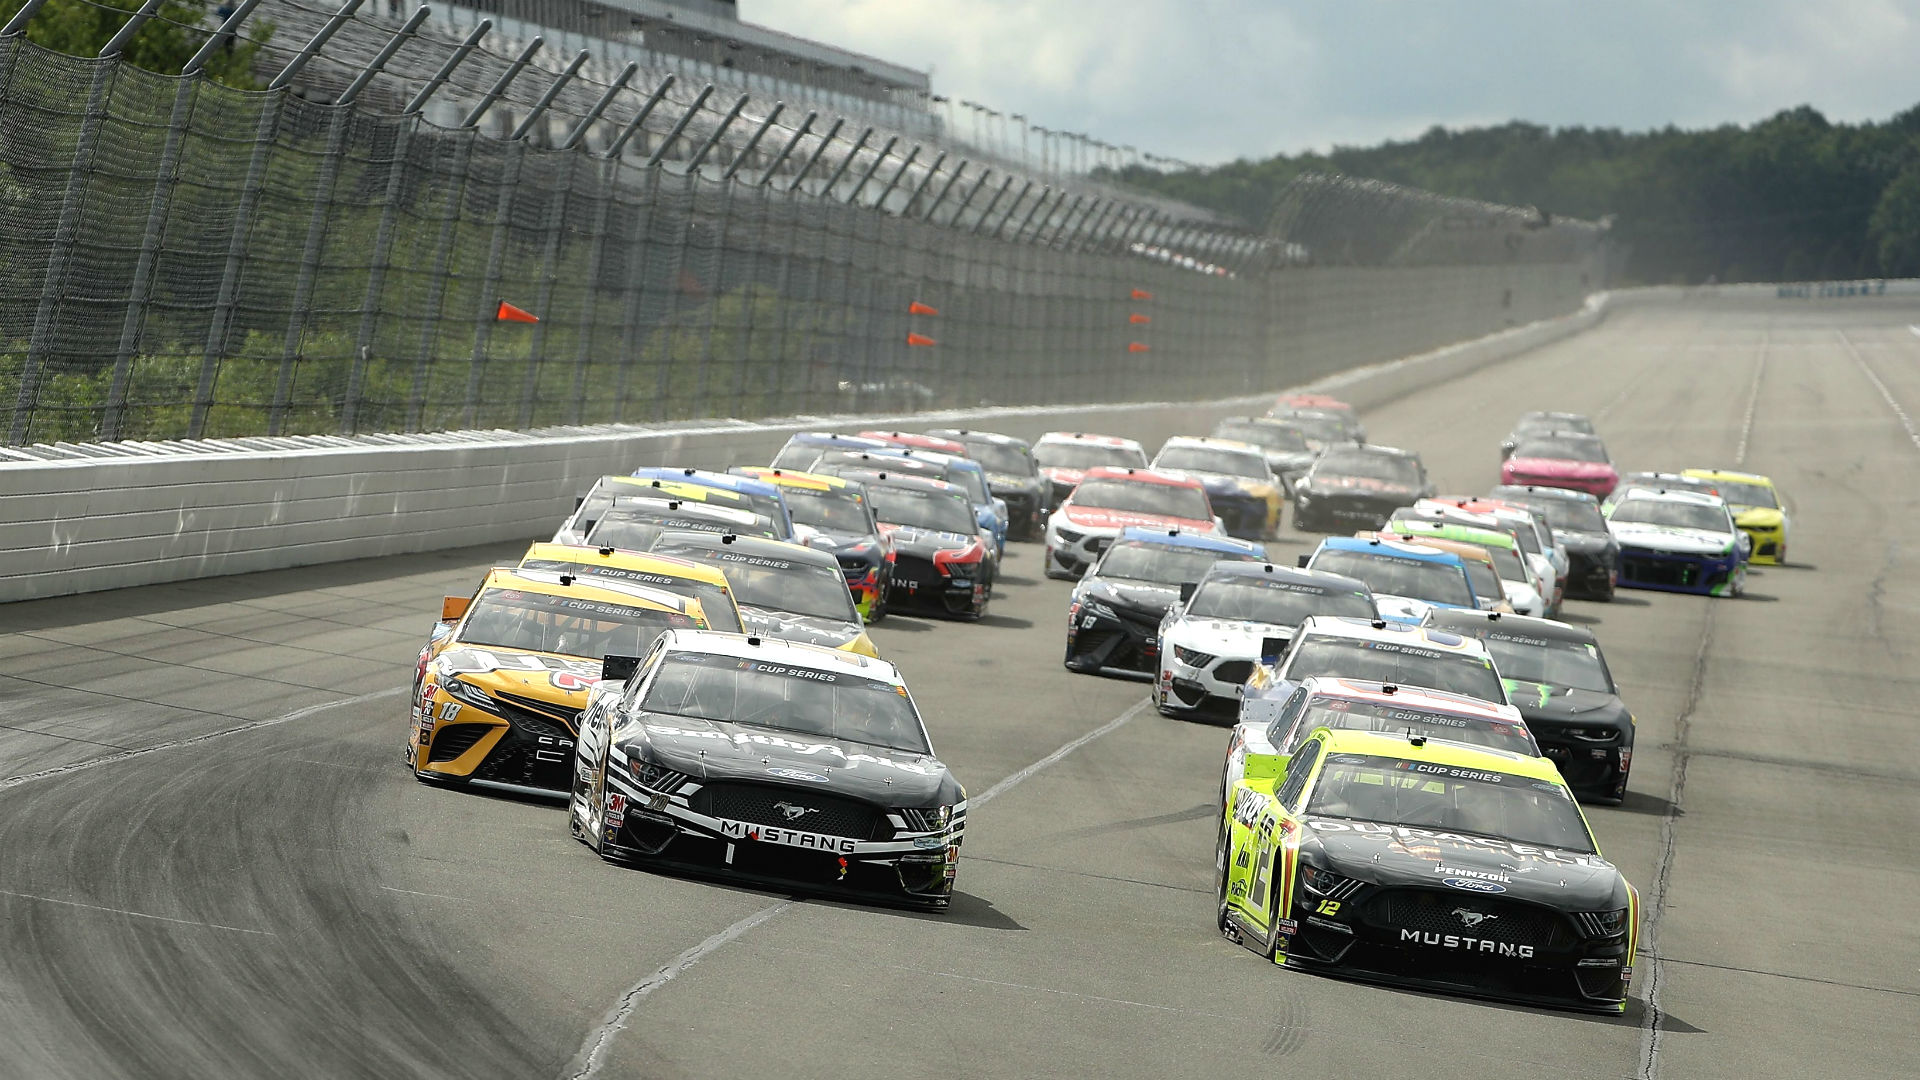 NASCAR at Pocono: Race results, highlights from Saturday's first leg of doubleheader 1